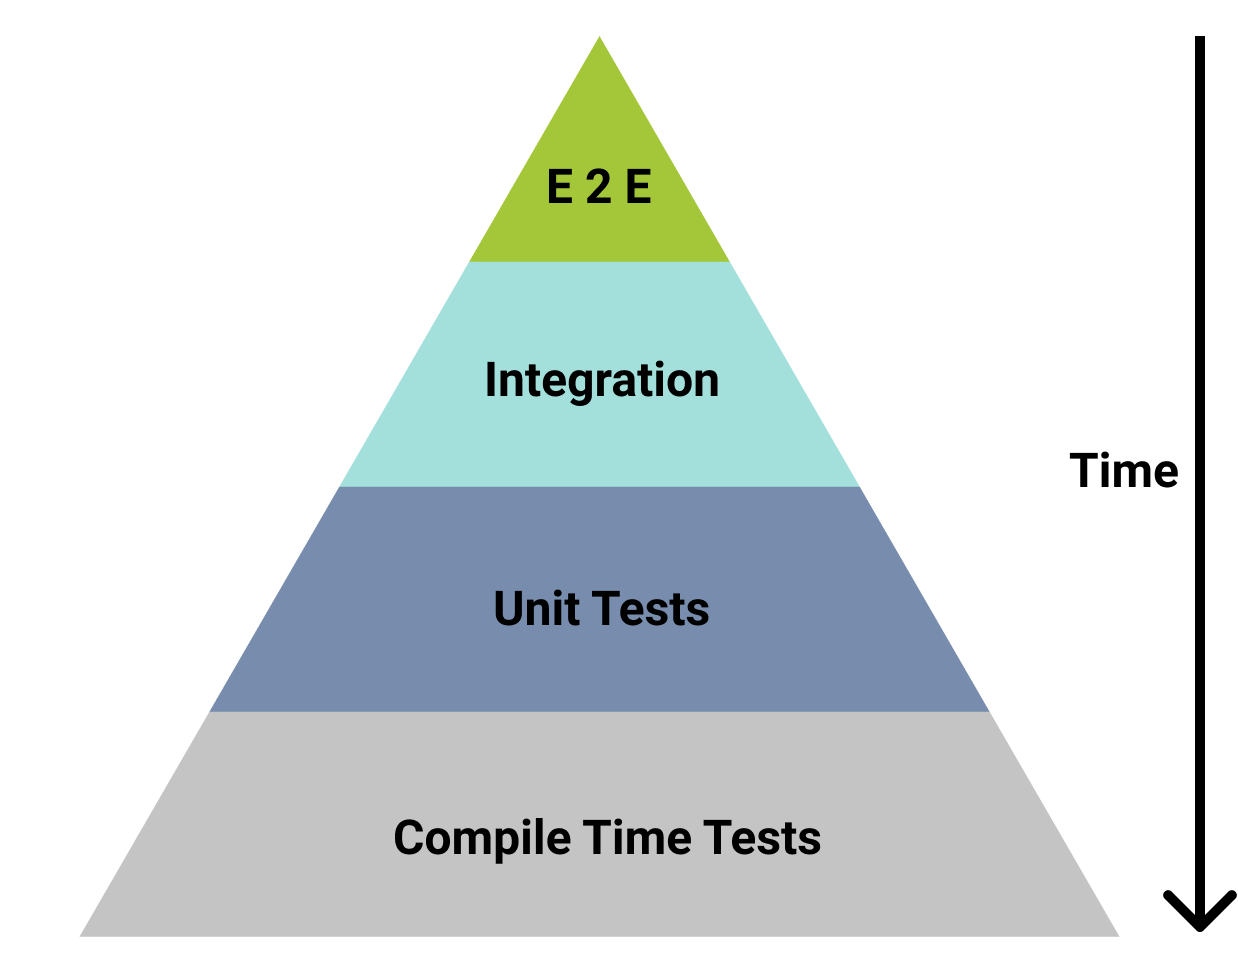 The Testing Pyramid Has a Deeper Foundation